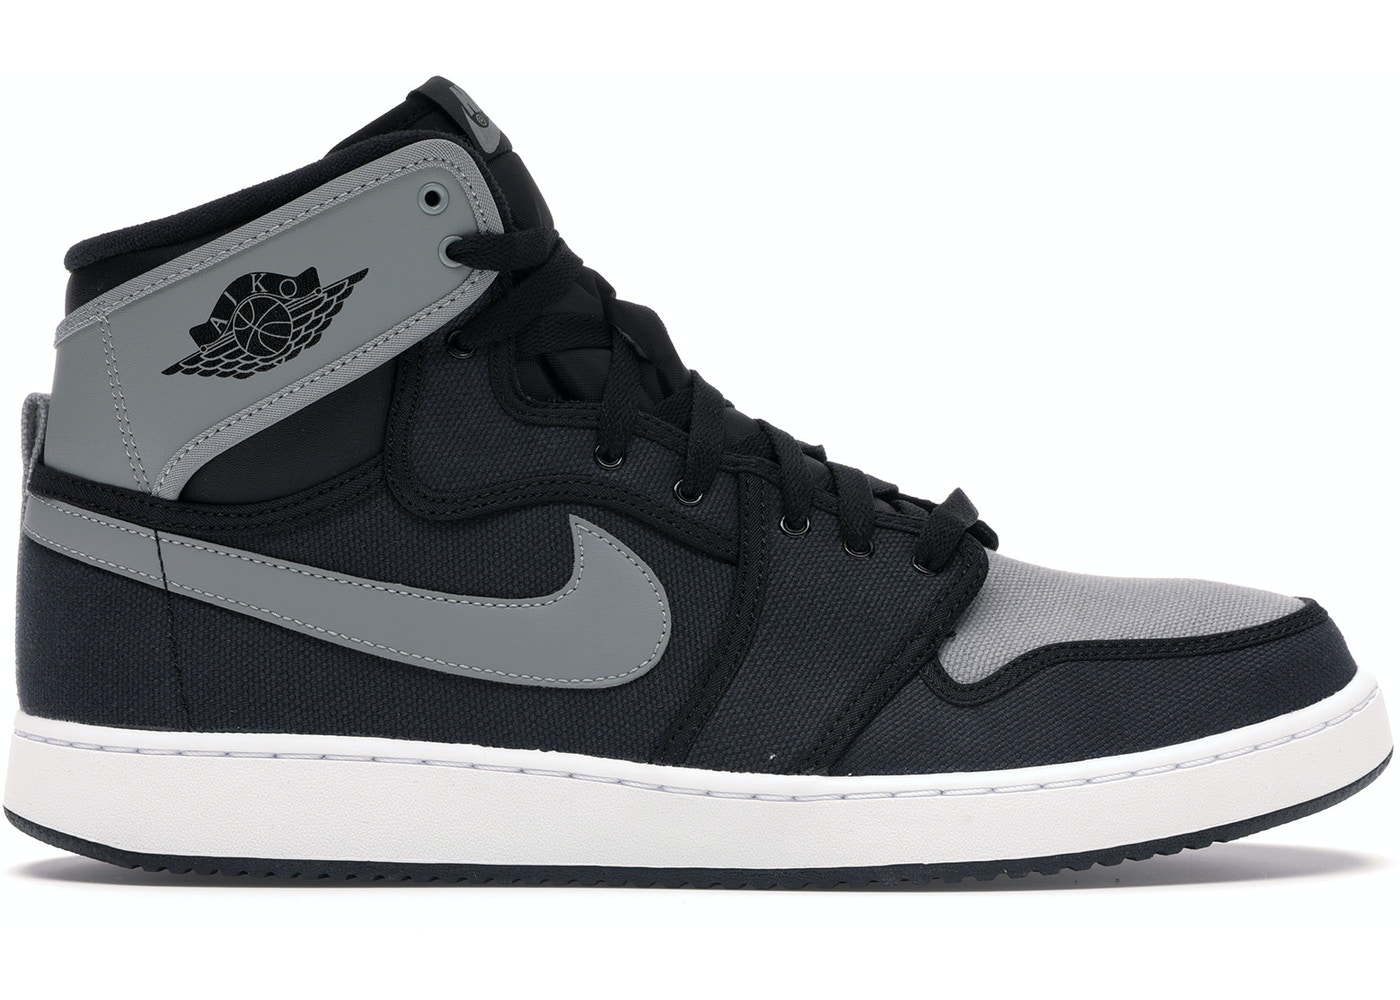 newest 202a7 c2614 Jordan 1 Retro KO Shadow (2015)